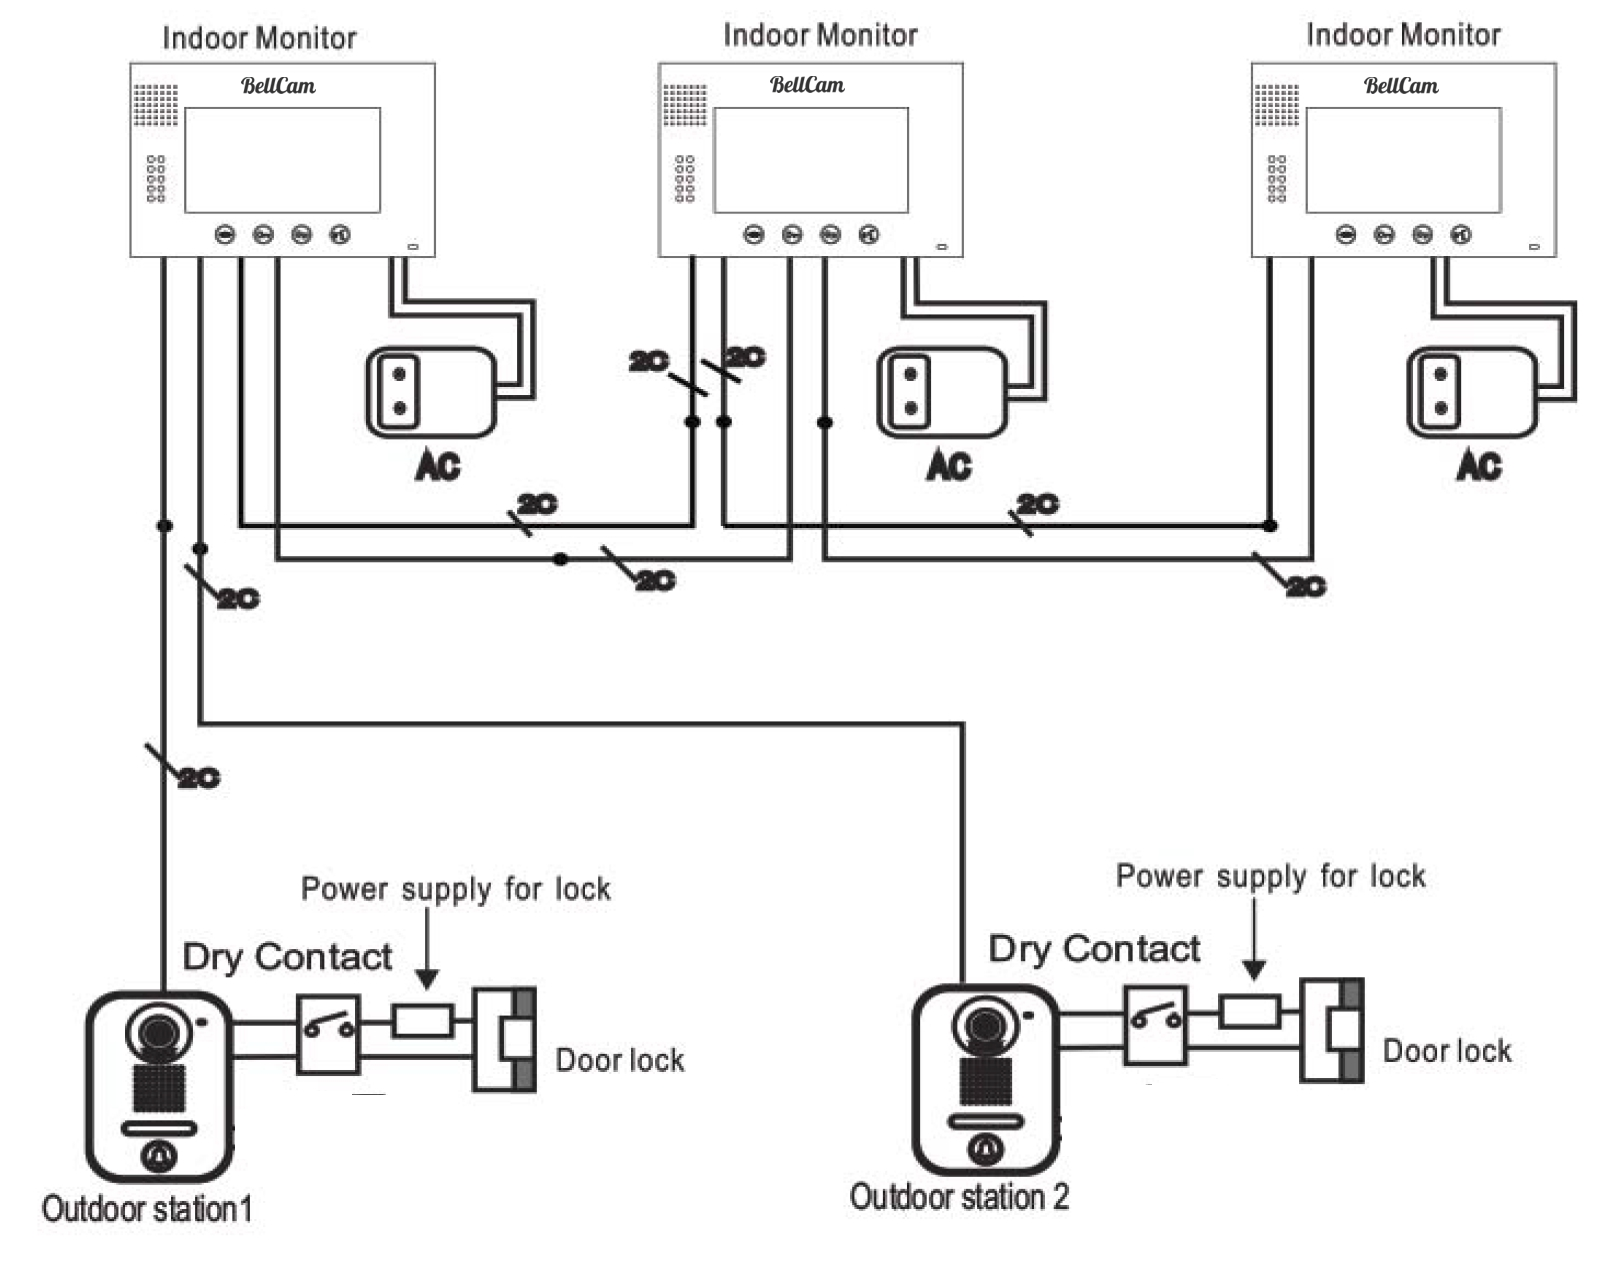 Memory Systems Welcome Wireless Network Intercom Free Download Wiring Diagrams Pictures Bellcam 2 Wire Video System Diagram